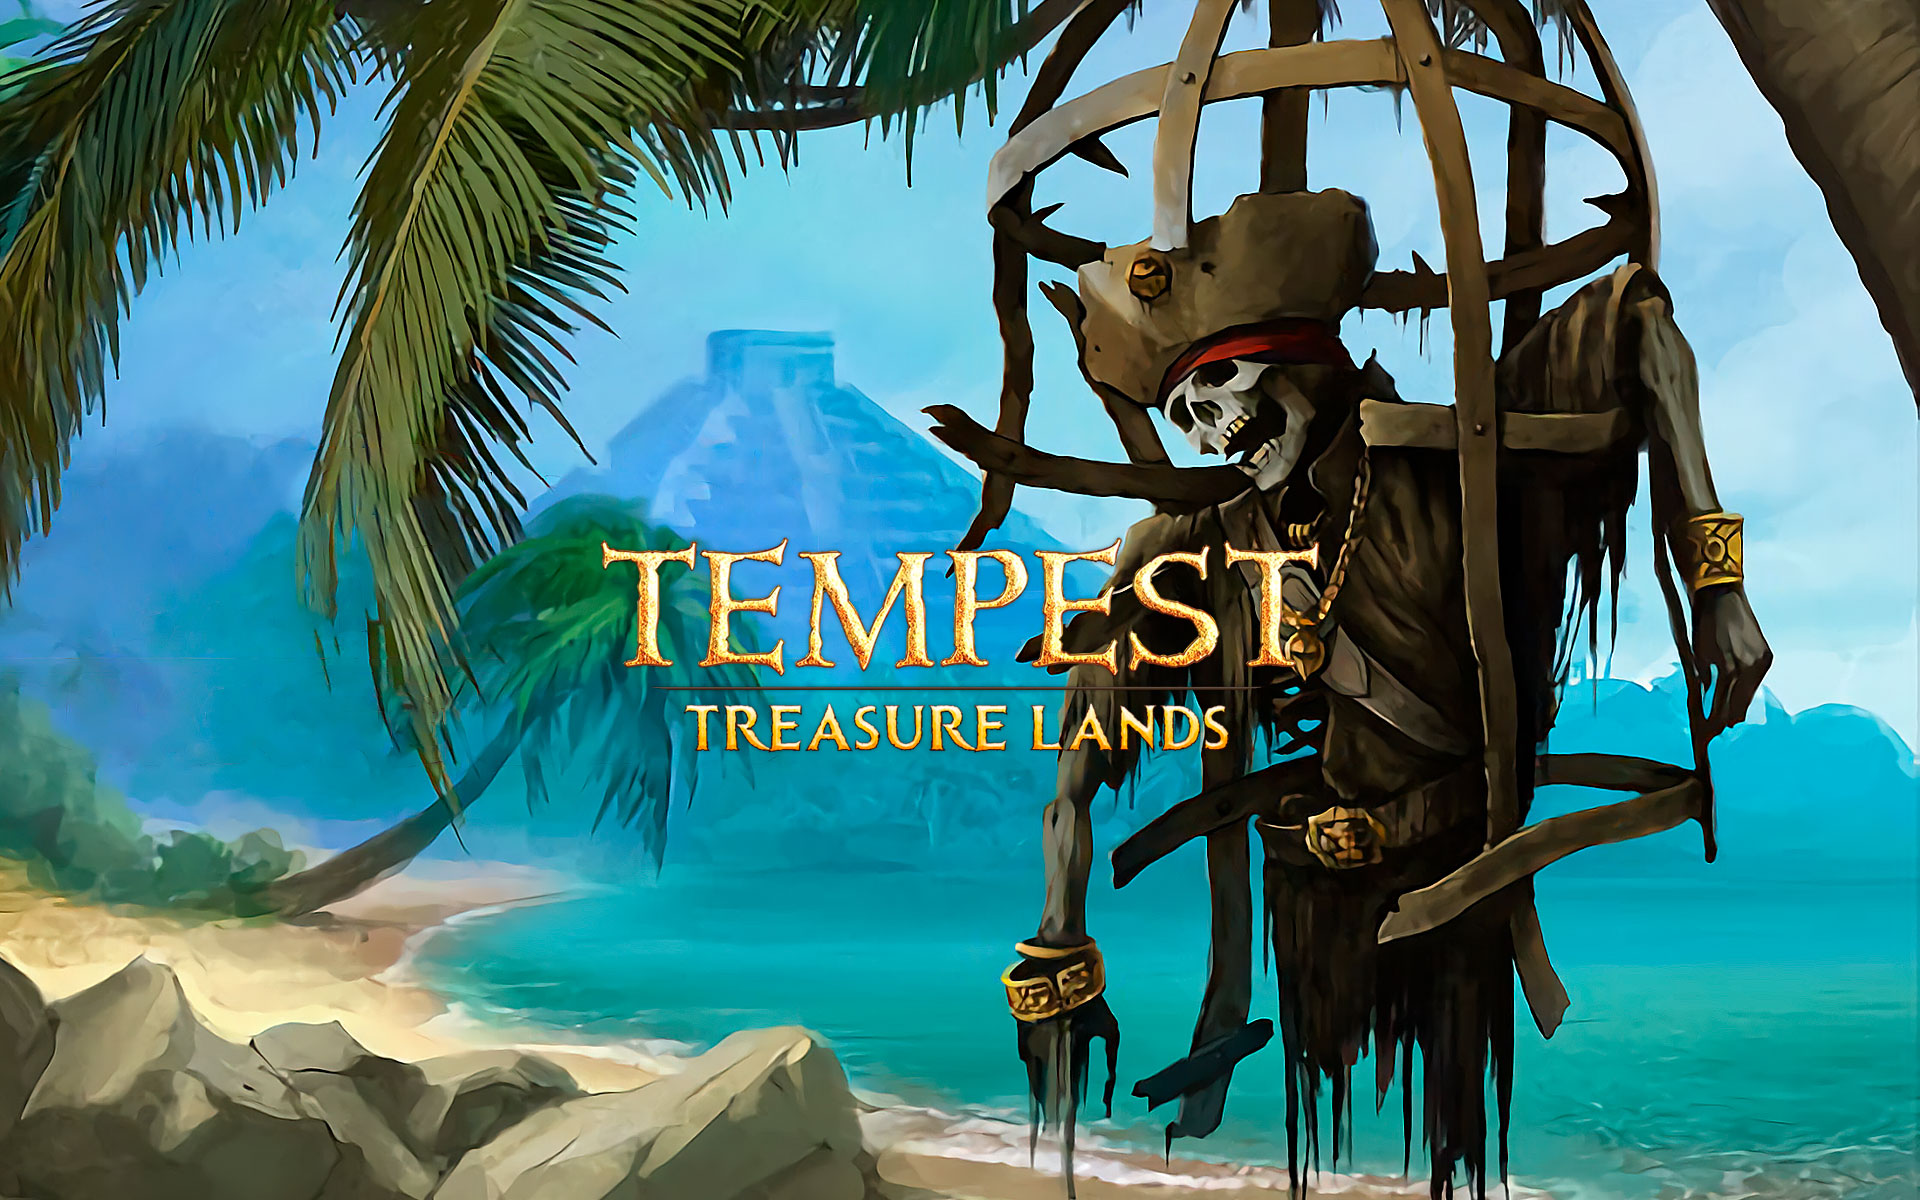 Tempest - Treasure Lands (DLC)